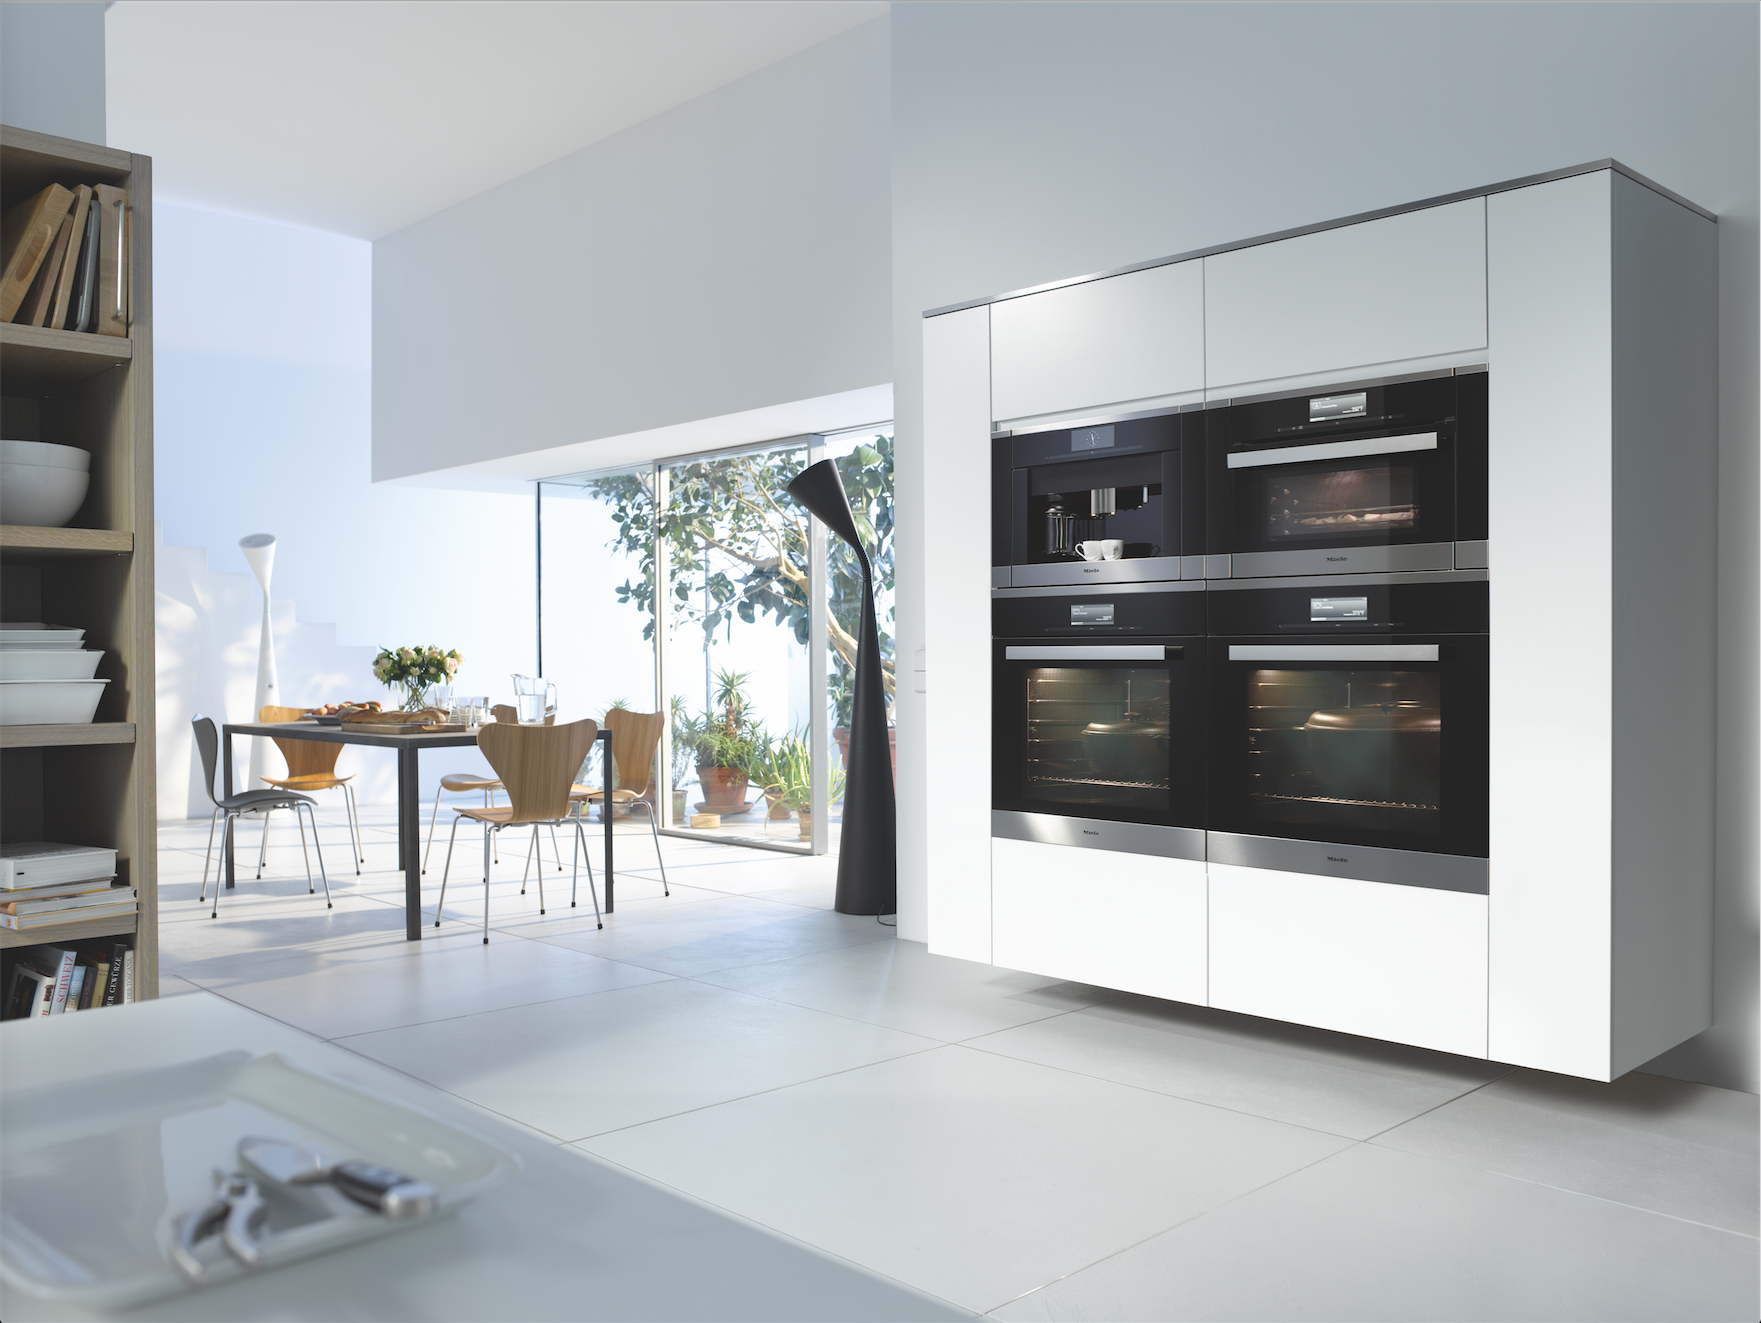 Uncategorized Miele Kitchen Appliances best 25 miele kitchen ideas on pinterest mieles built in appliances products that flawlessly complement one another terms of